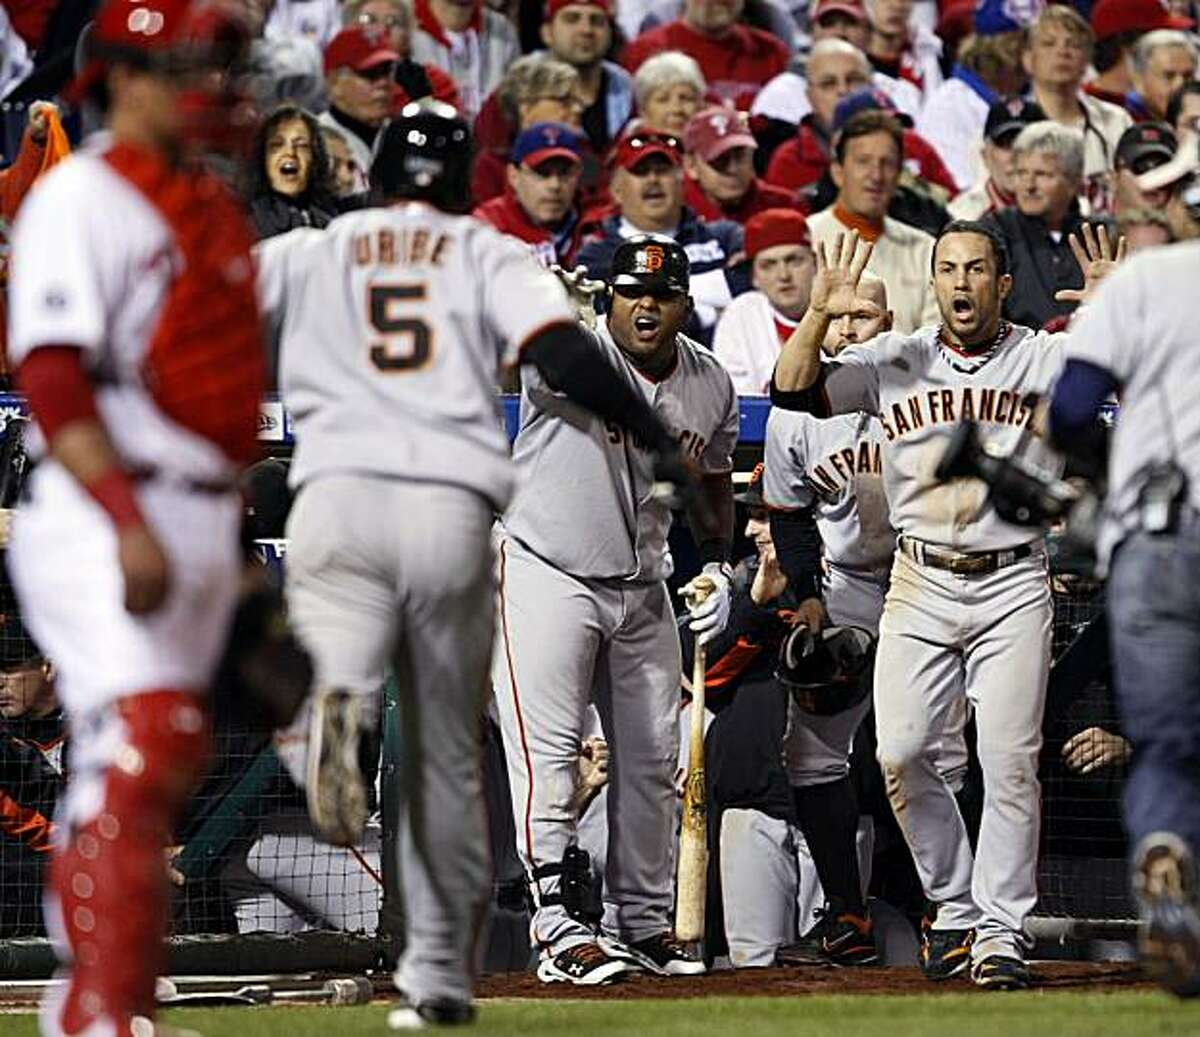 The San Francisco Giants celebrate Juan Uribe's 8th inning home run put the Giants in the lead 3-2 in game six of the NLCS game with the Philadelphia Phillies Saturday Oct. 23, 2010 at Citizens Bank Park in Philadelphia PA.